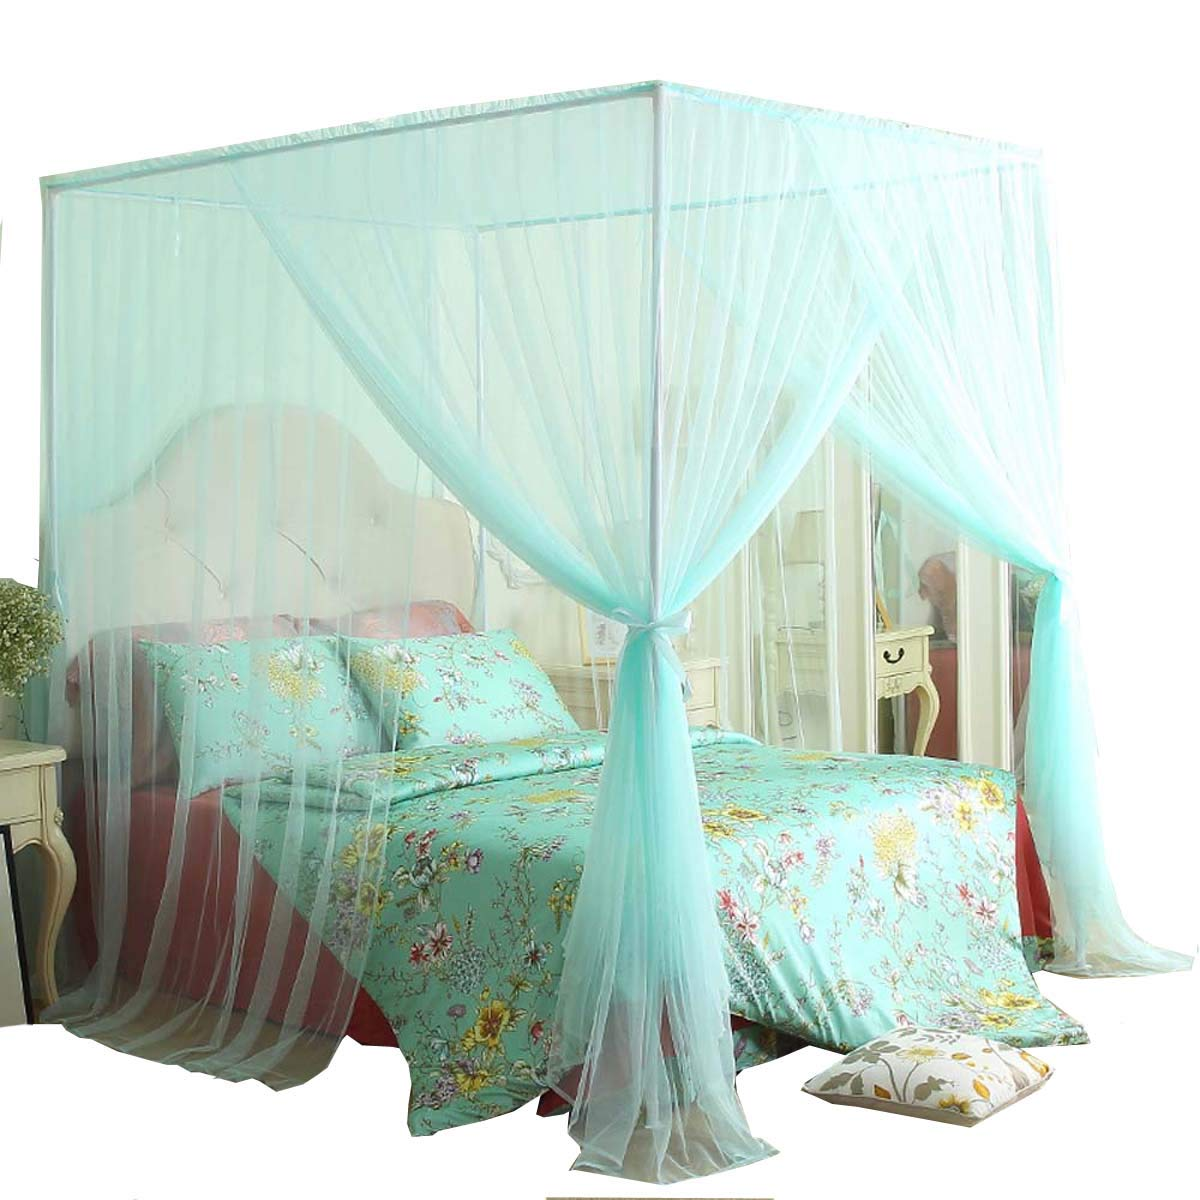 Mengersi 4 Corner Bed Canopy Curtain Mosquito Net Bed Frame Draperies (California King, Light Green)